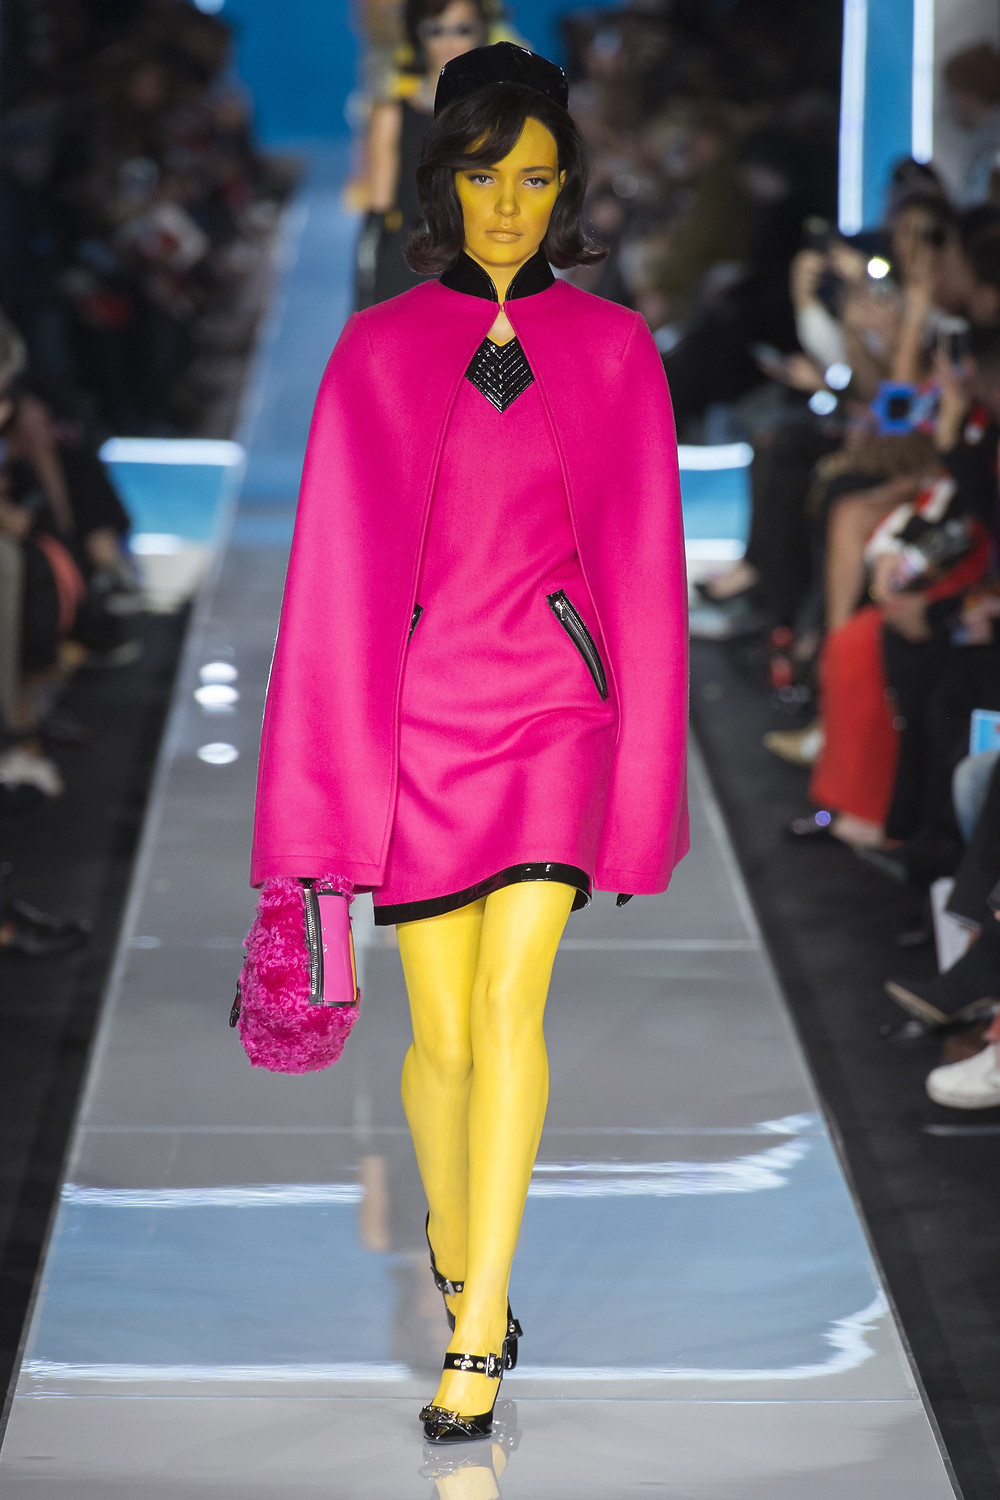 Oslo Grace for Moschino AW18